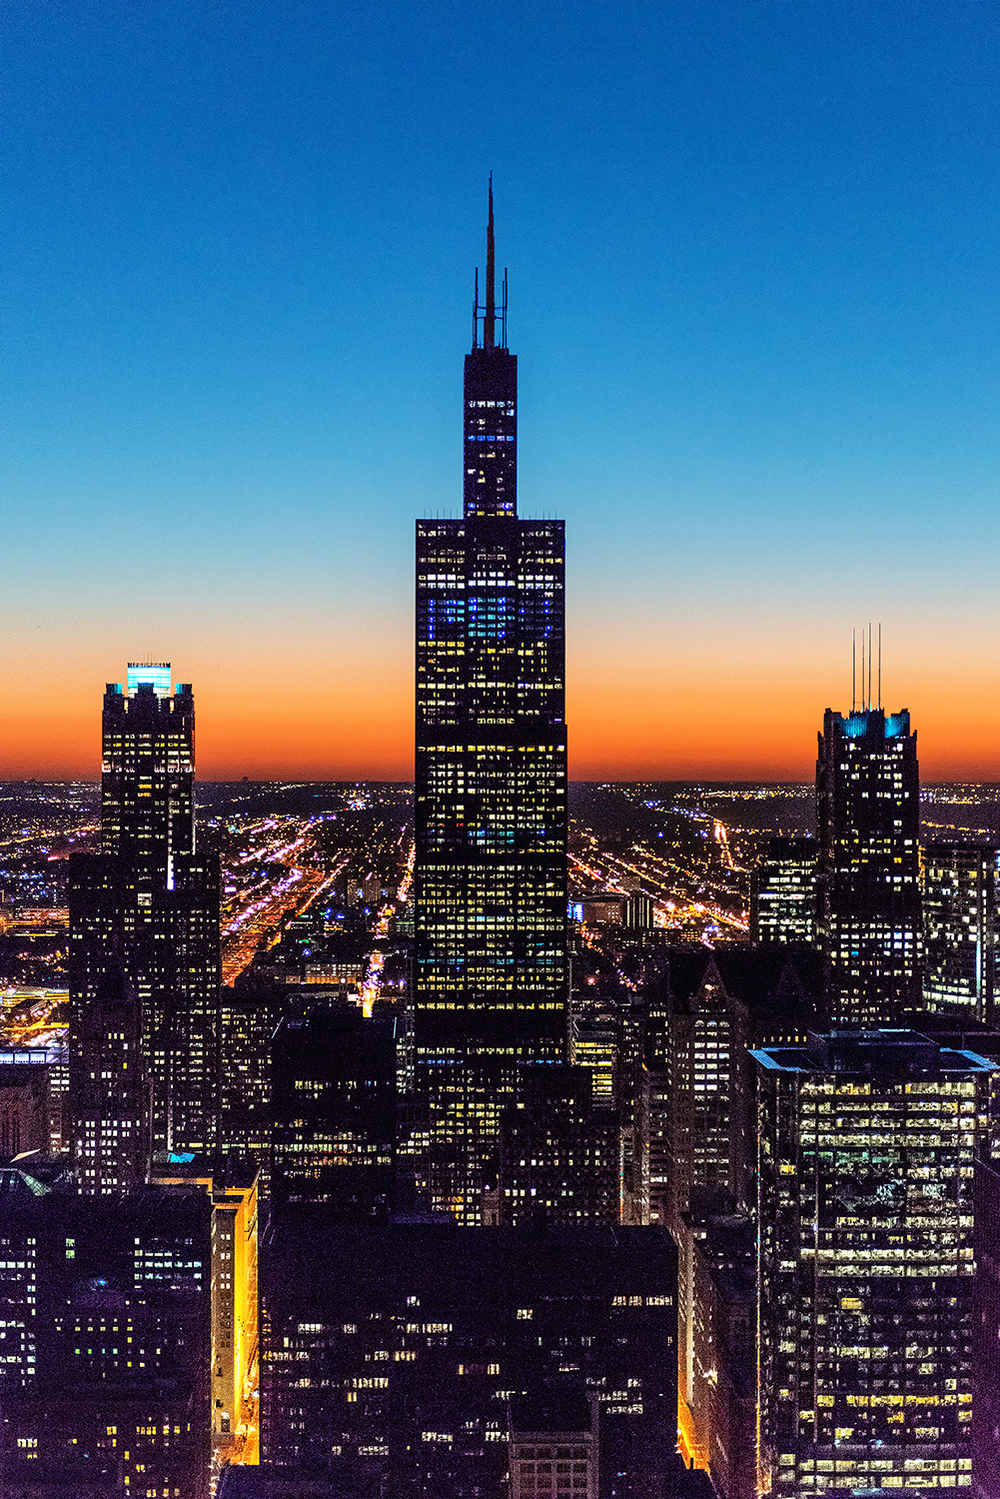 Image Title:  Sears Tower Sunset - Aerial   Mat Sizes:  8x10, 11x14, 16x20   Float Mount Sizes:  12x18, 16x24, 20x30, 24x36, 28x42, 32x48, 36x54, 40x60.